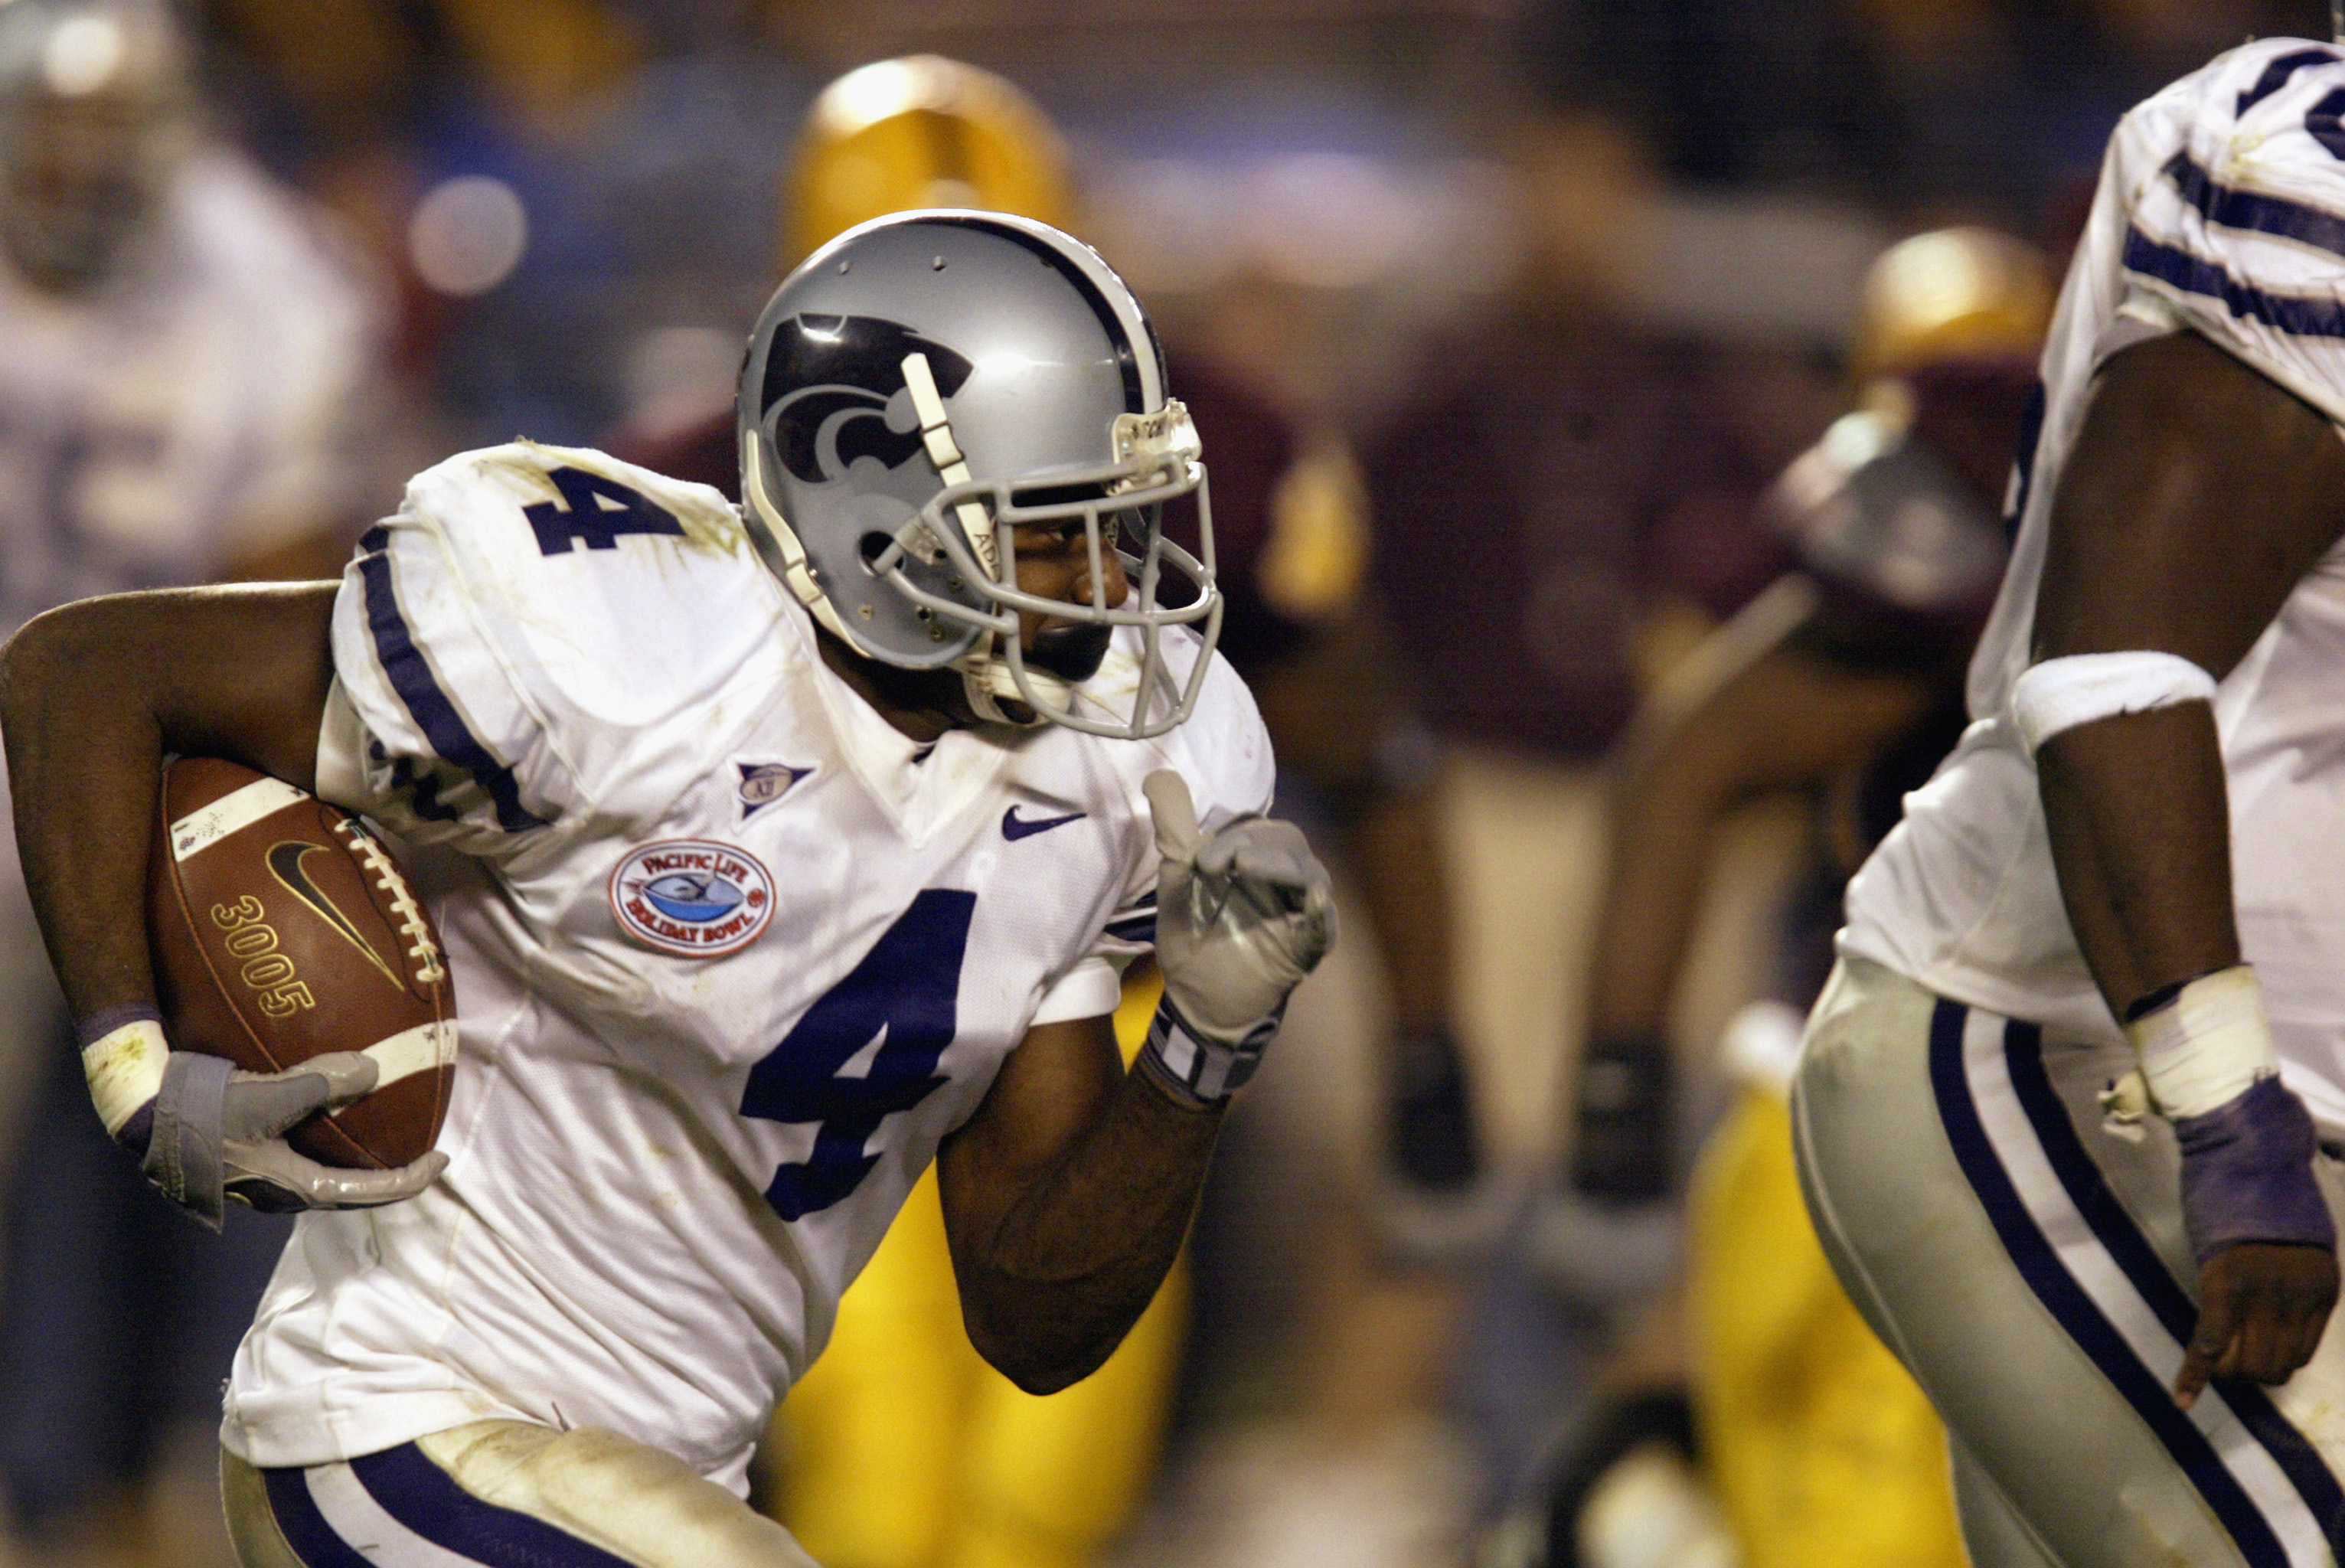 I don't want to get too deep into the overhype game, but Duke Shelley carries the potential to be K-State's best pure cornerback since this guy.